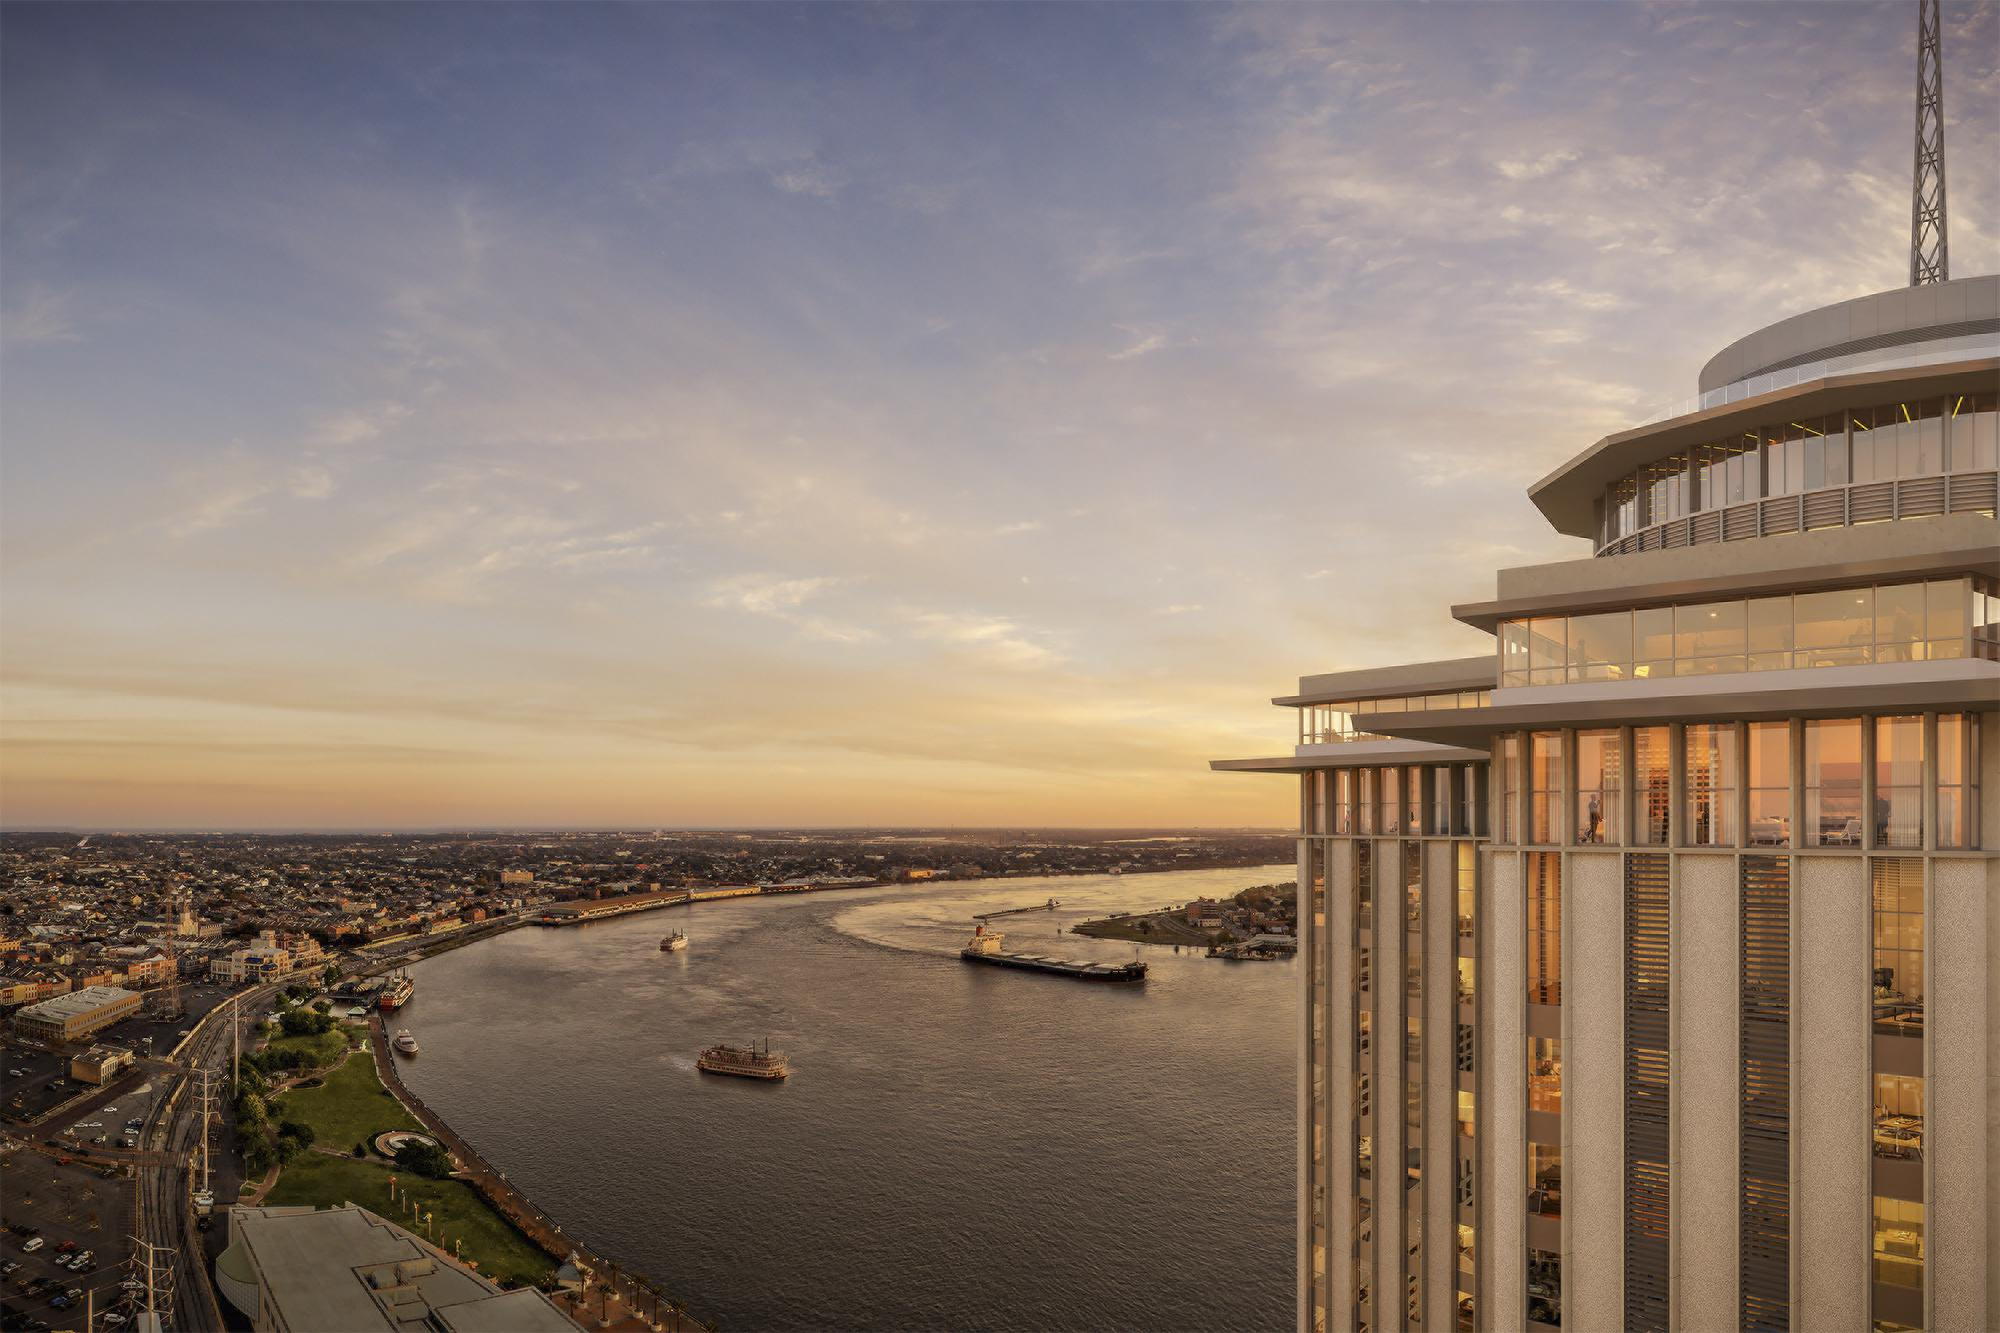 Check out the latest hotel projects in New Orleans